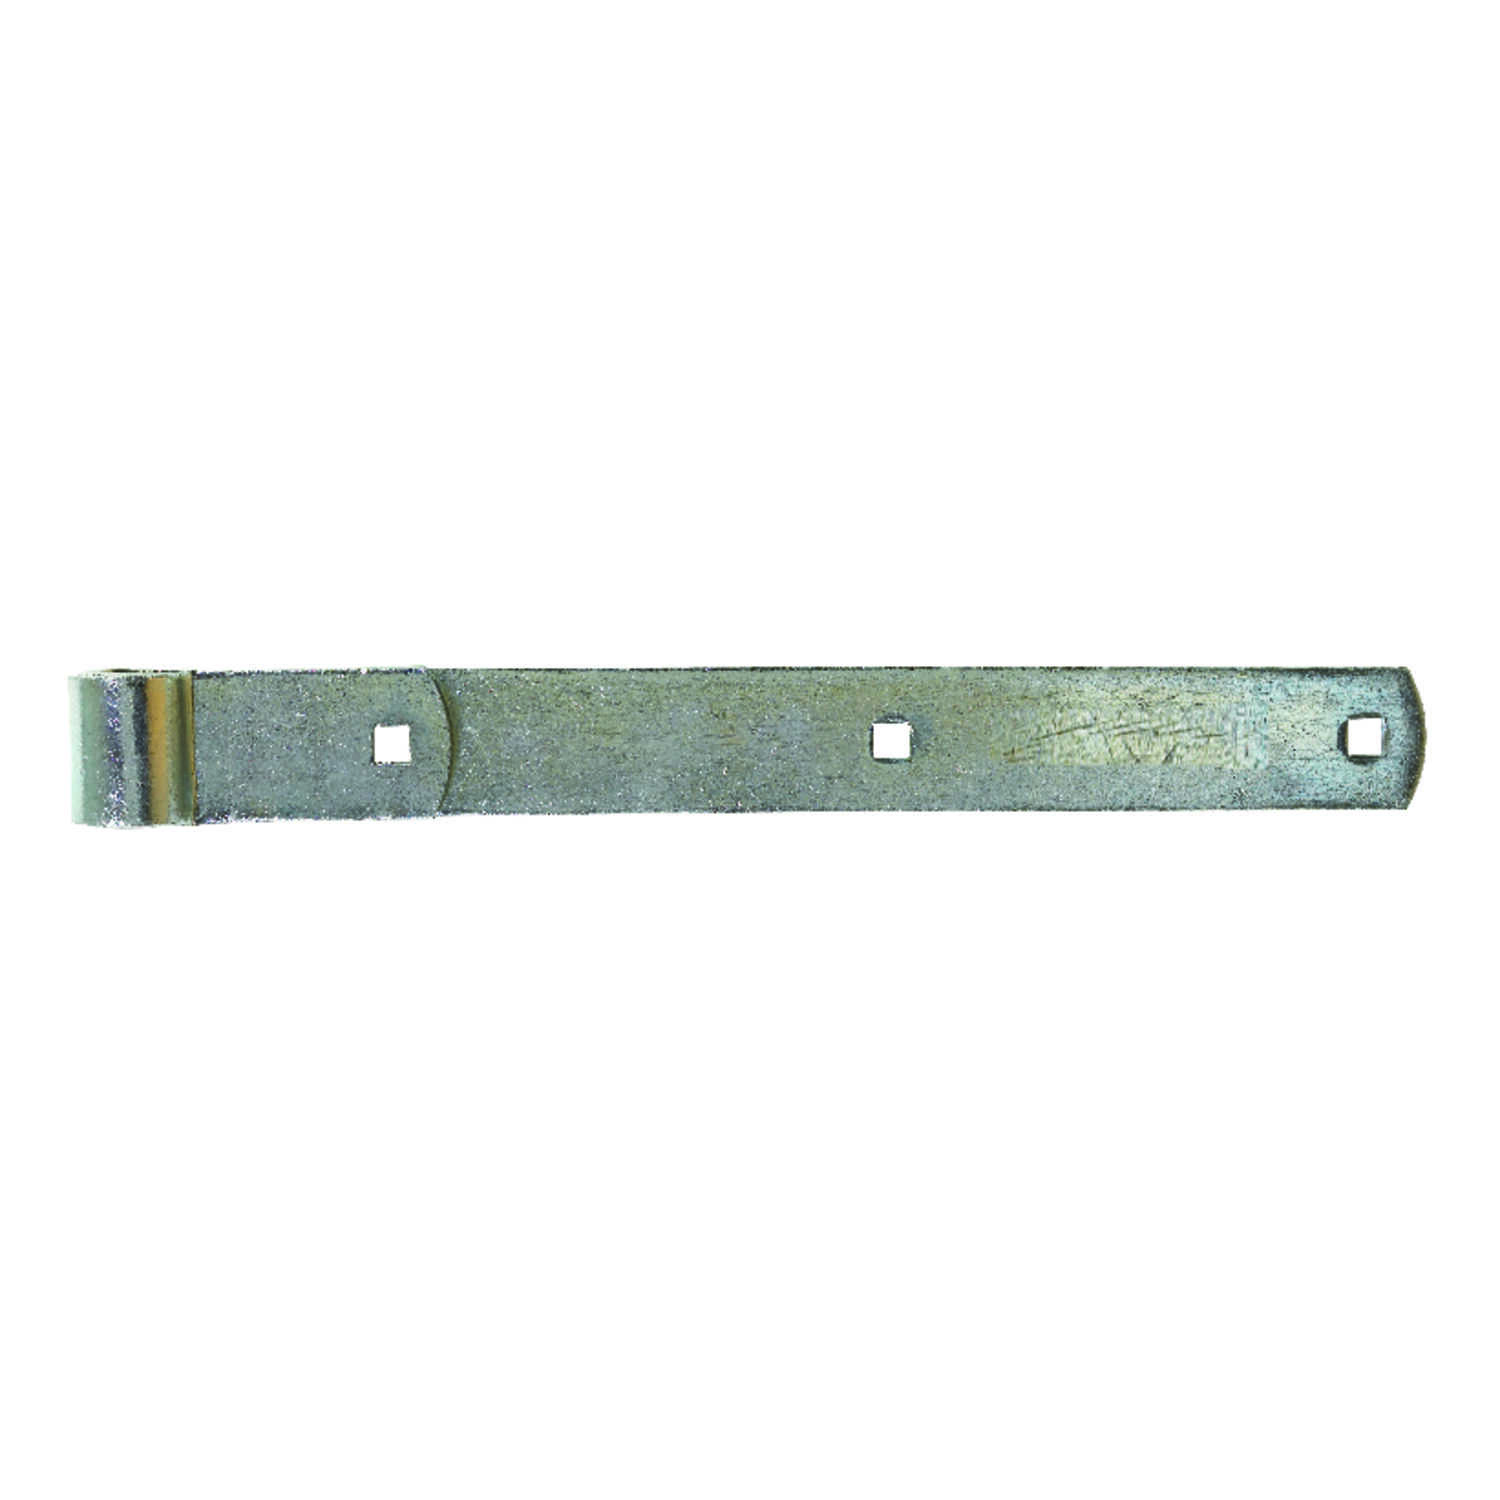 Ace  14 in. L Steel  Hinge Strap  Zinc-Plated  1 pk